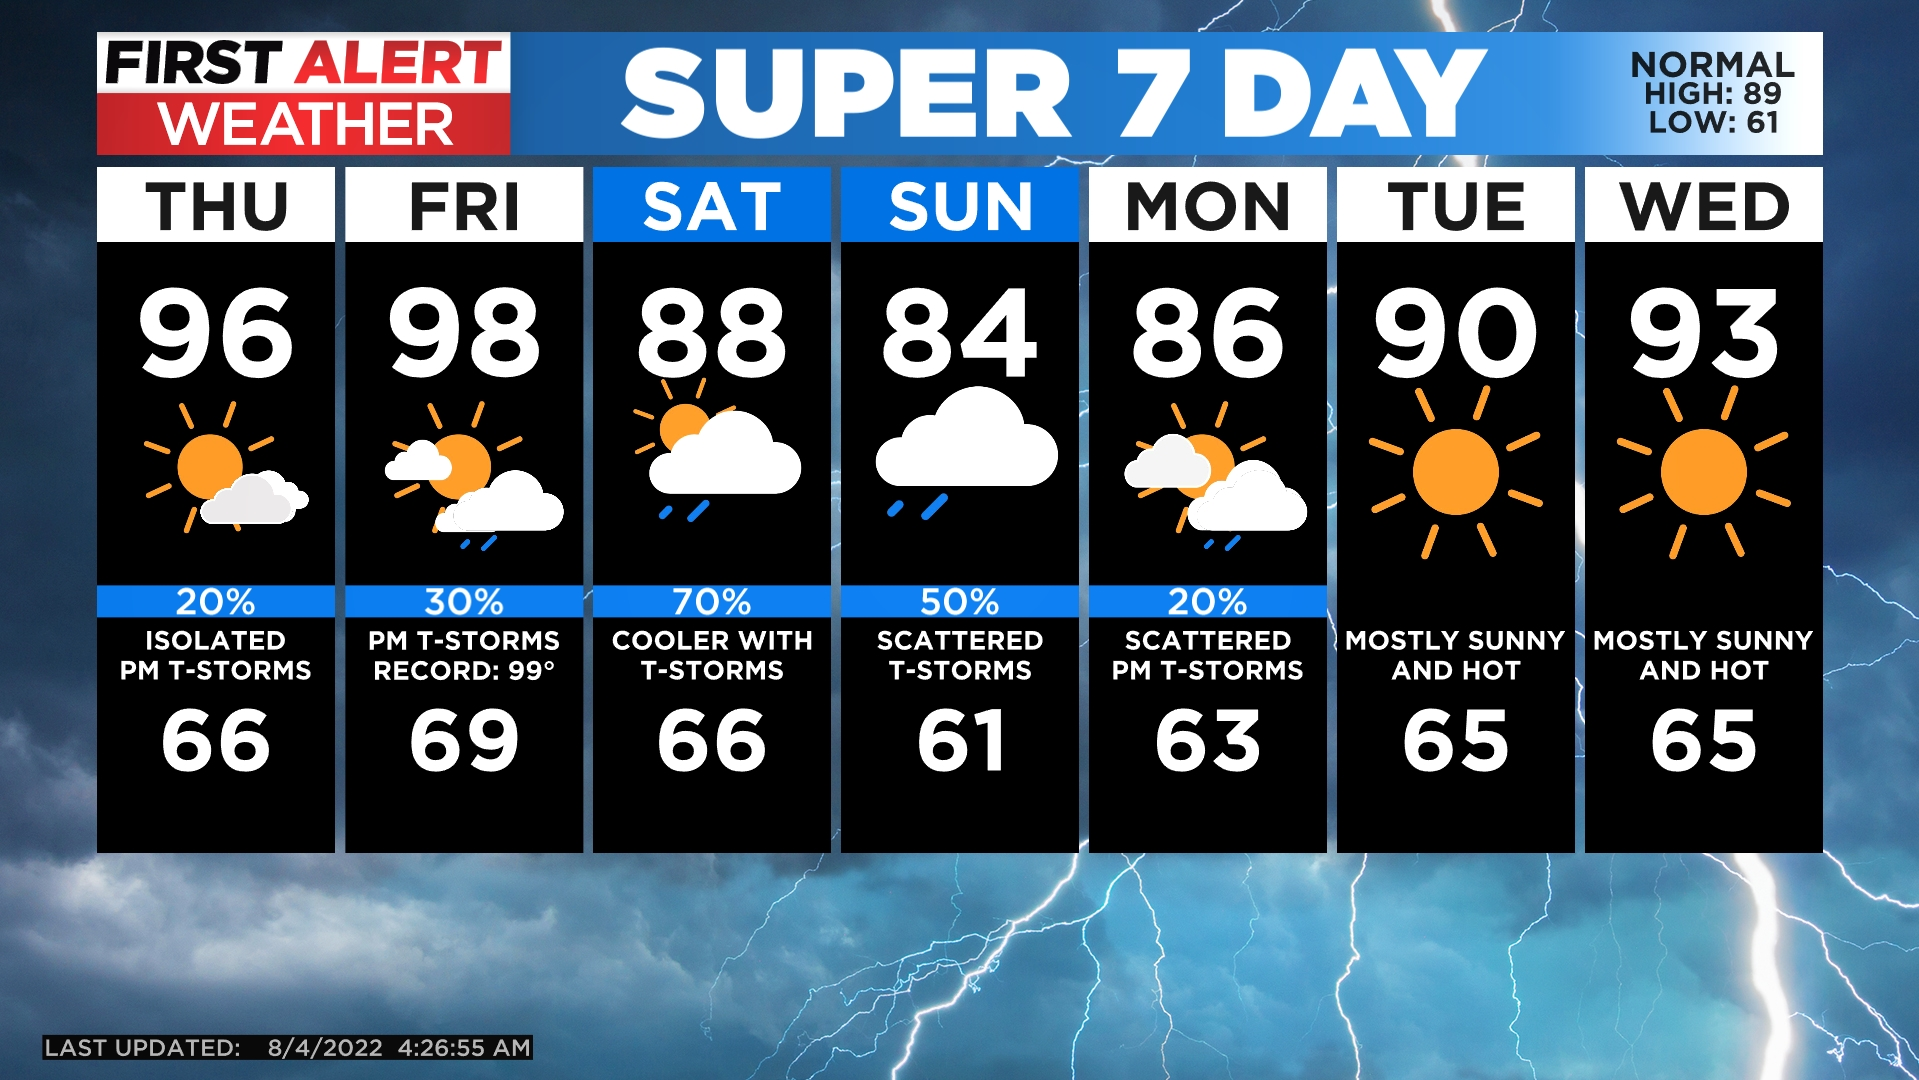 5day Watching For T storms